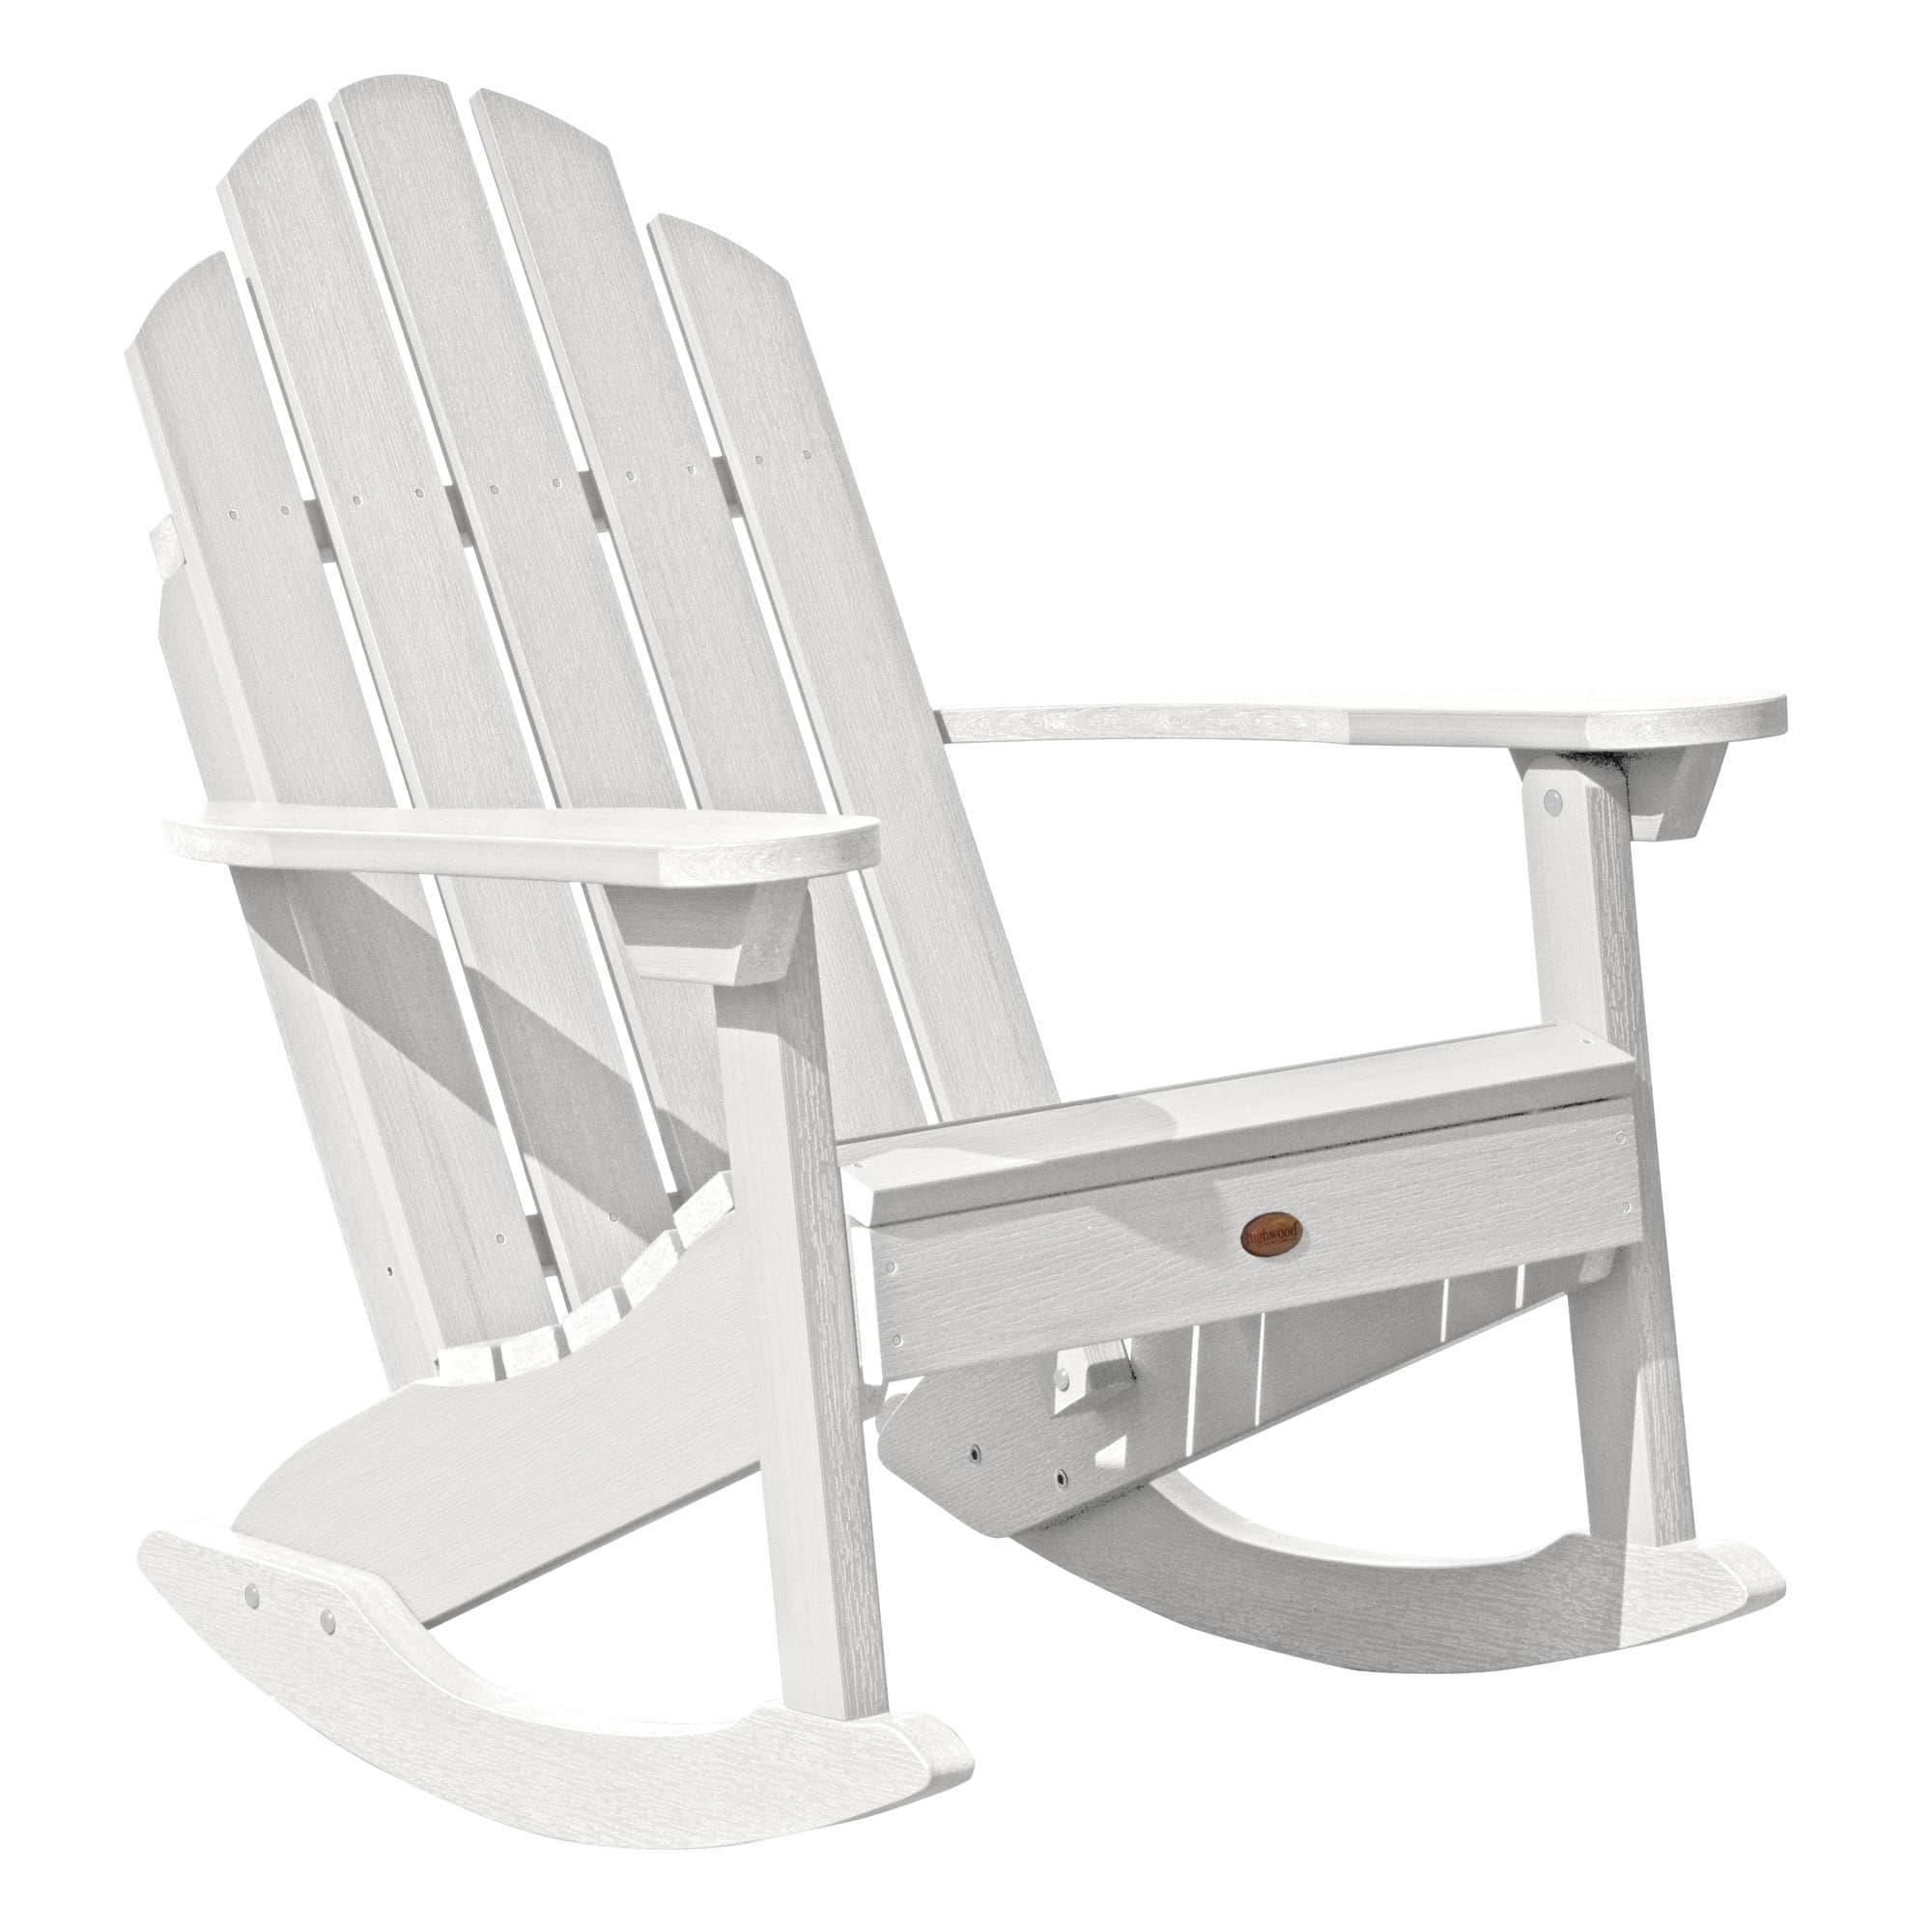 target white rocking chair folding wood oliver and james classic westport adirondack patio furniture